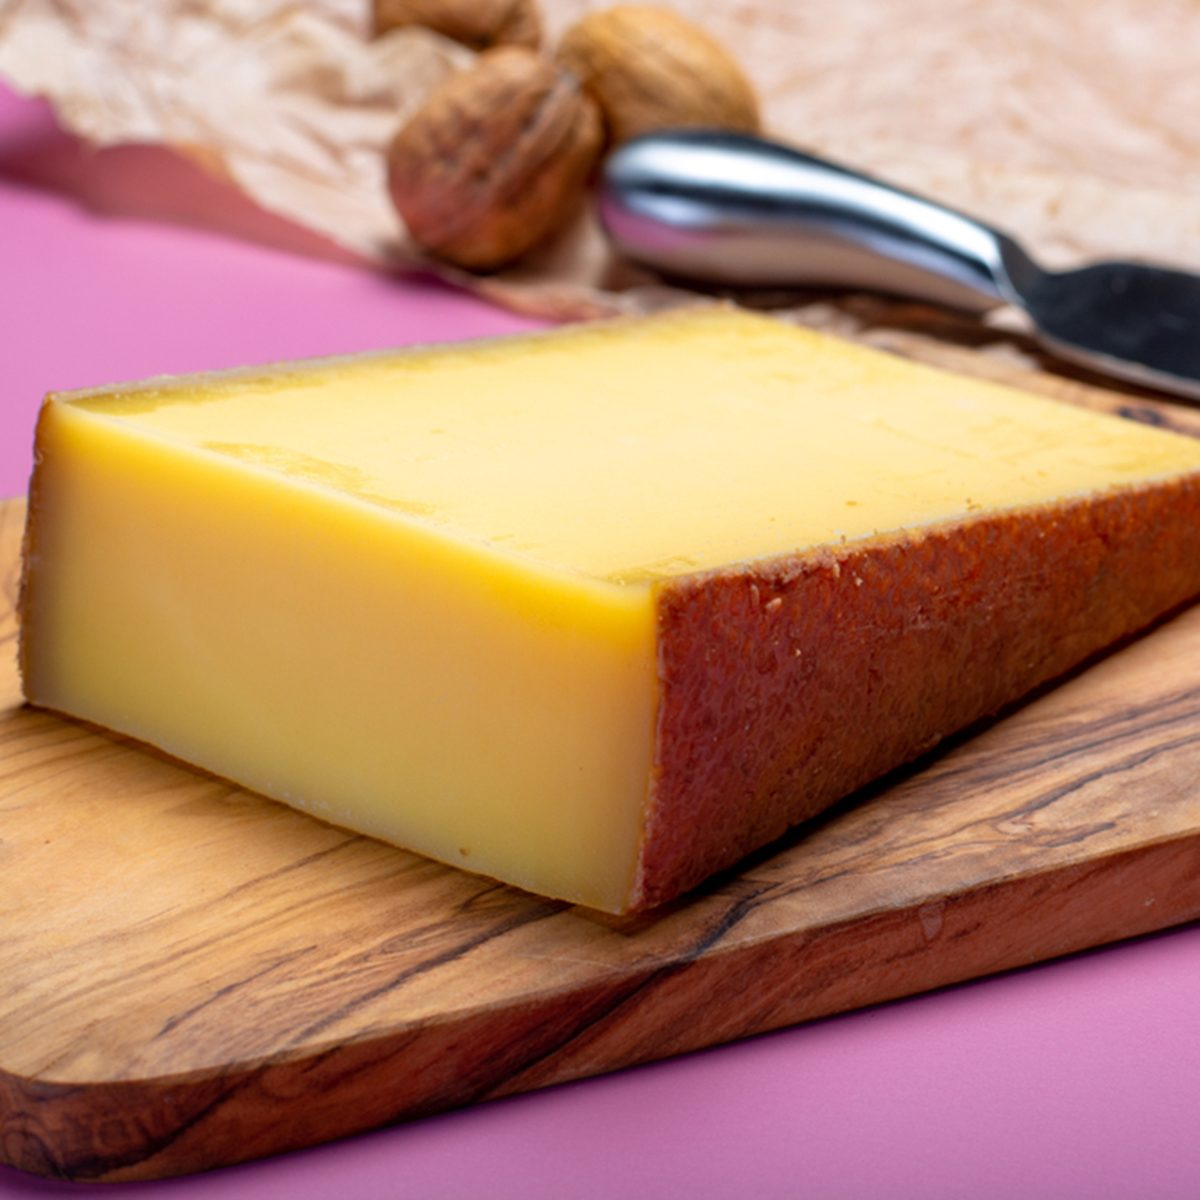 Piece of aged Comte or Gruyere de Comte, AOC French cheese made from unpasteurized cow's milk in the Franche-Comte region of eastern France with traditional methods of production close up.